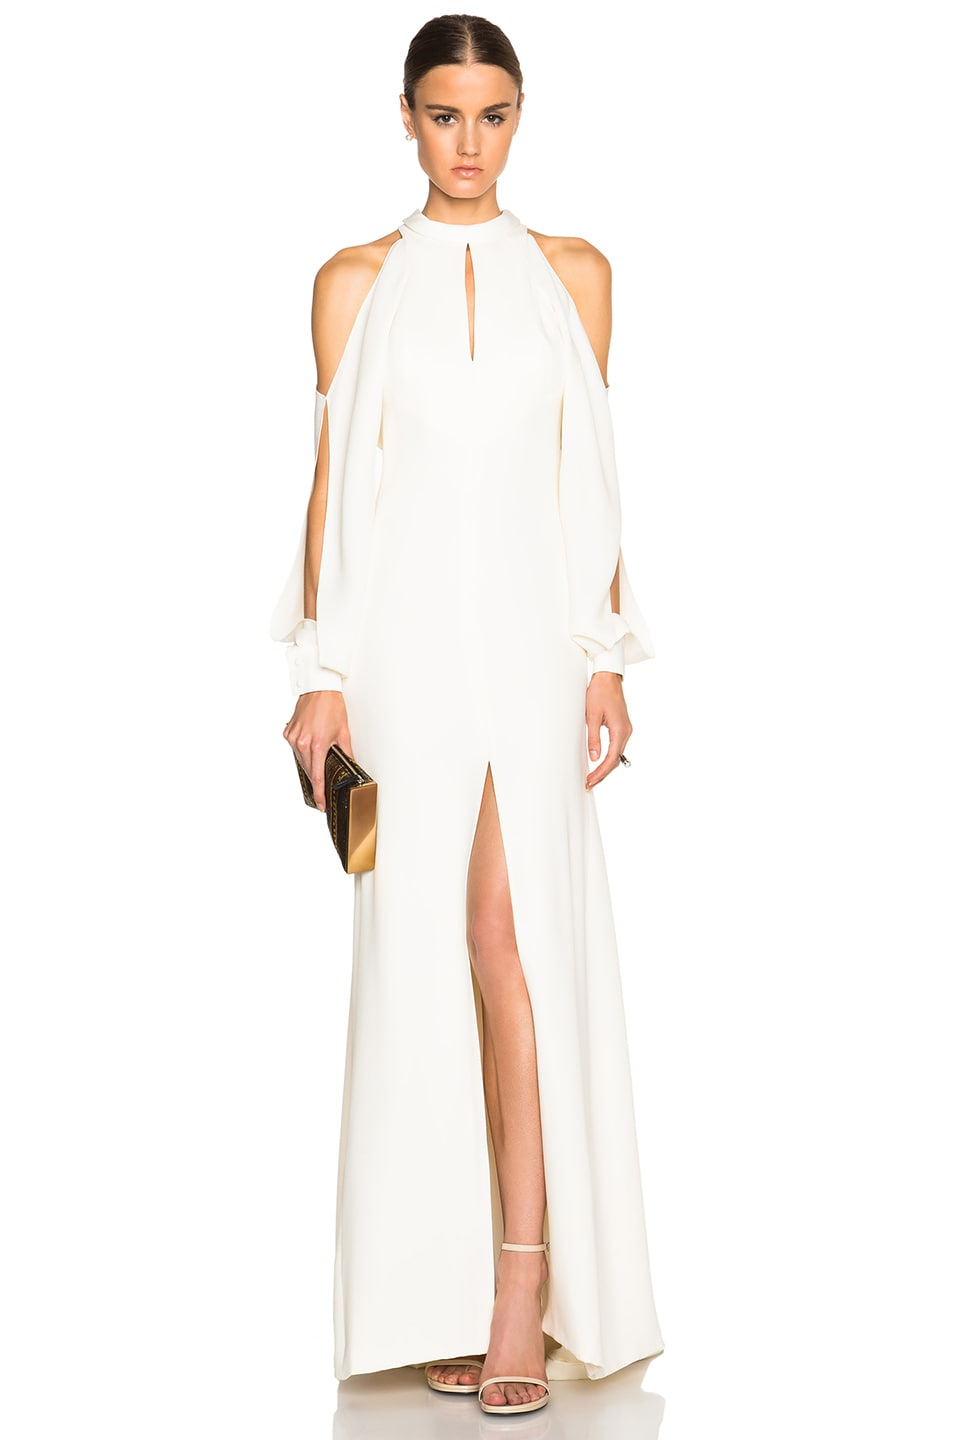 J. Mendel Crepe High Neck Gown with Cutaway Sleeves in Ivory | FWRD